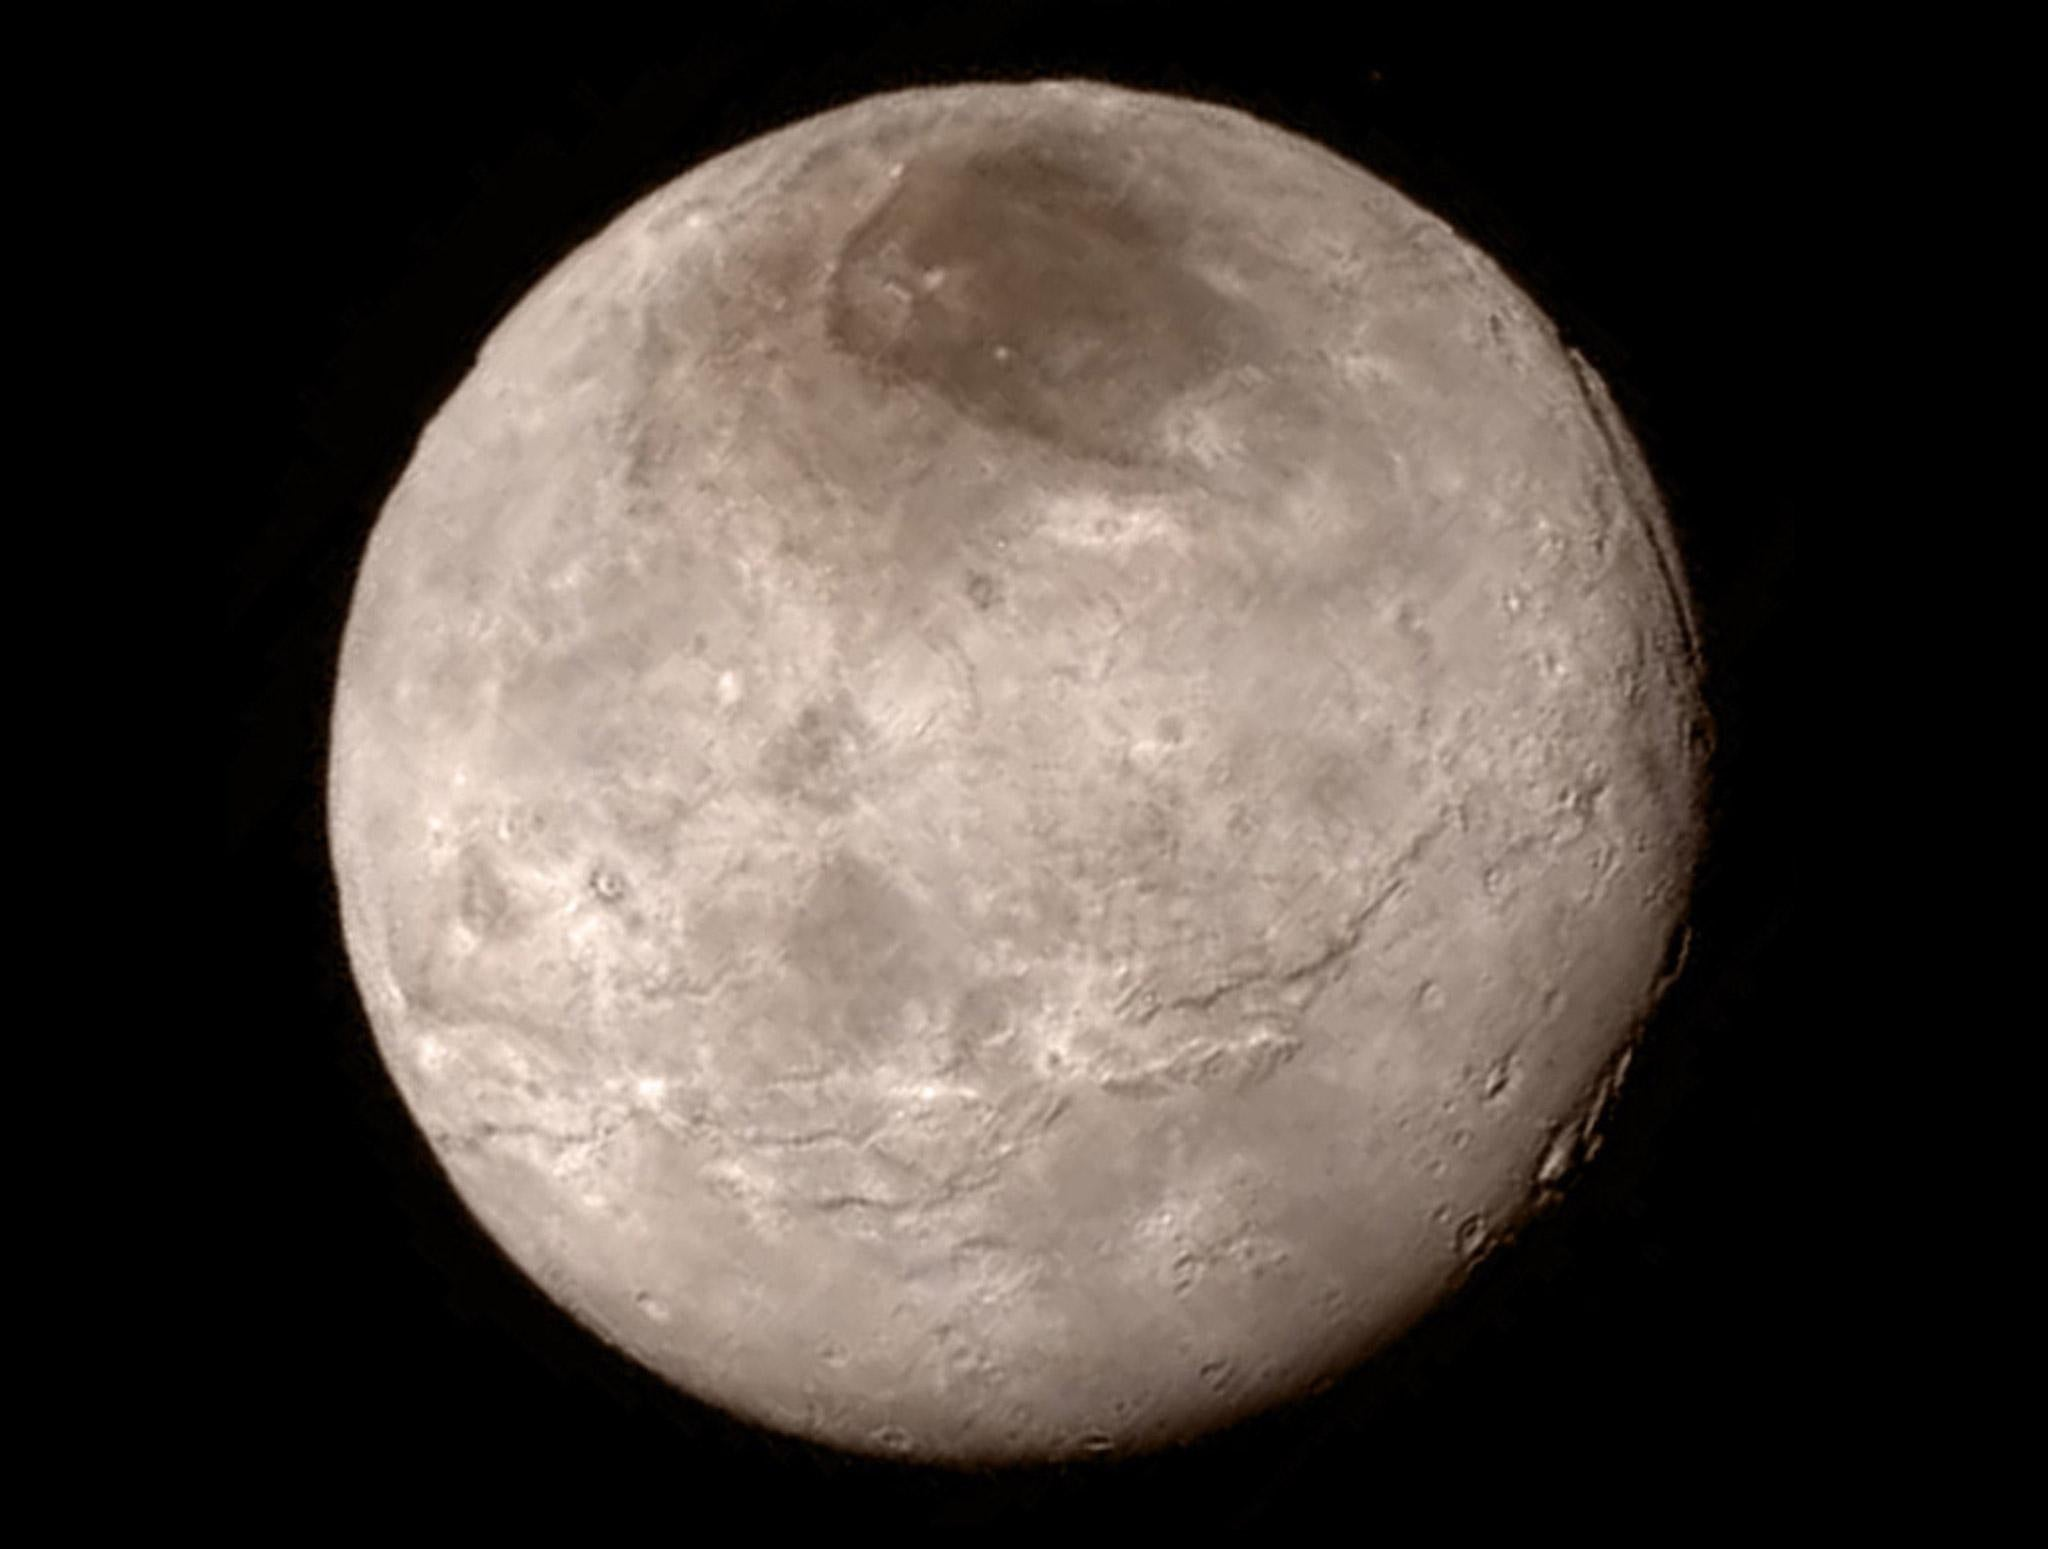 Alien ocean could be hiding under Pluto's surface, increasing chance of extraterrestrial life, scientists say